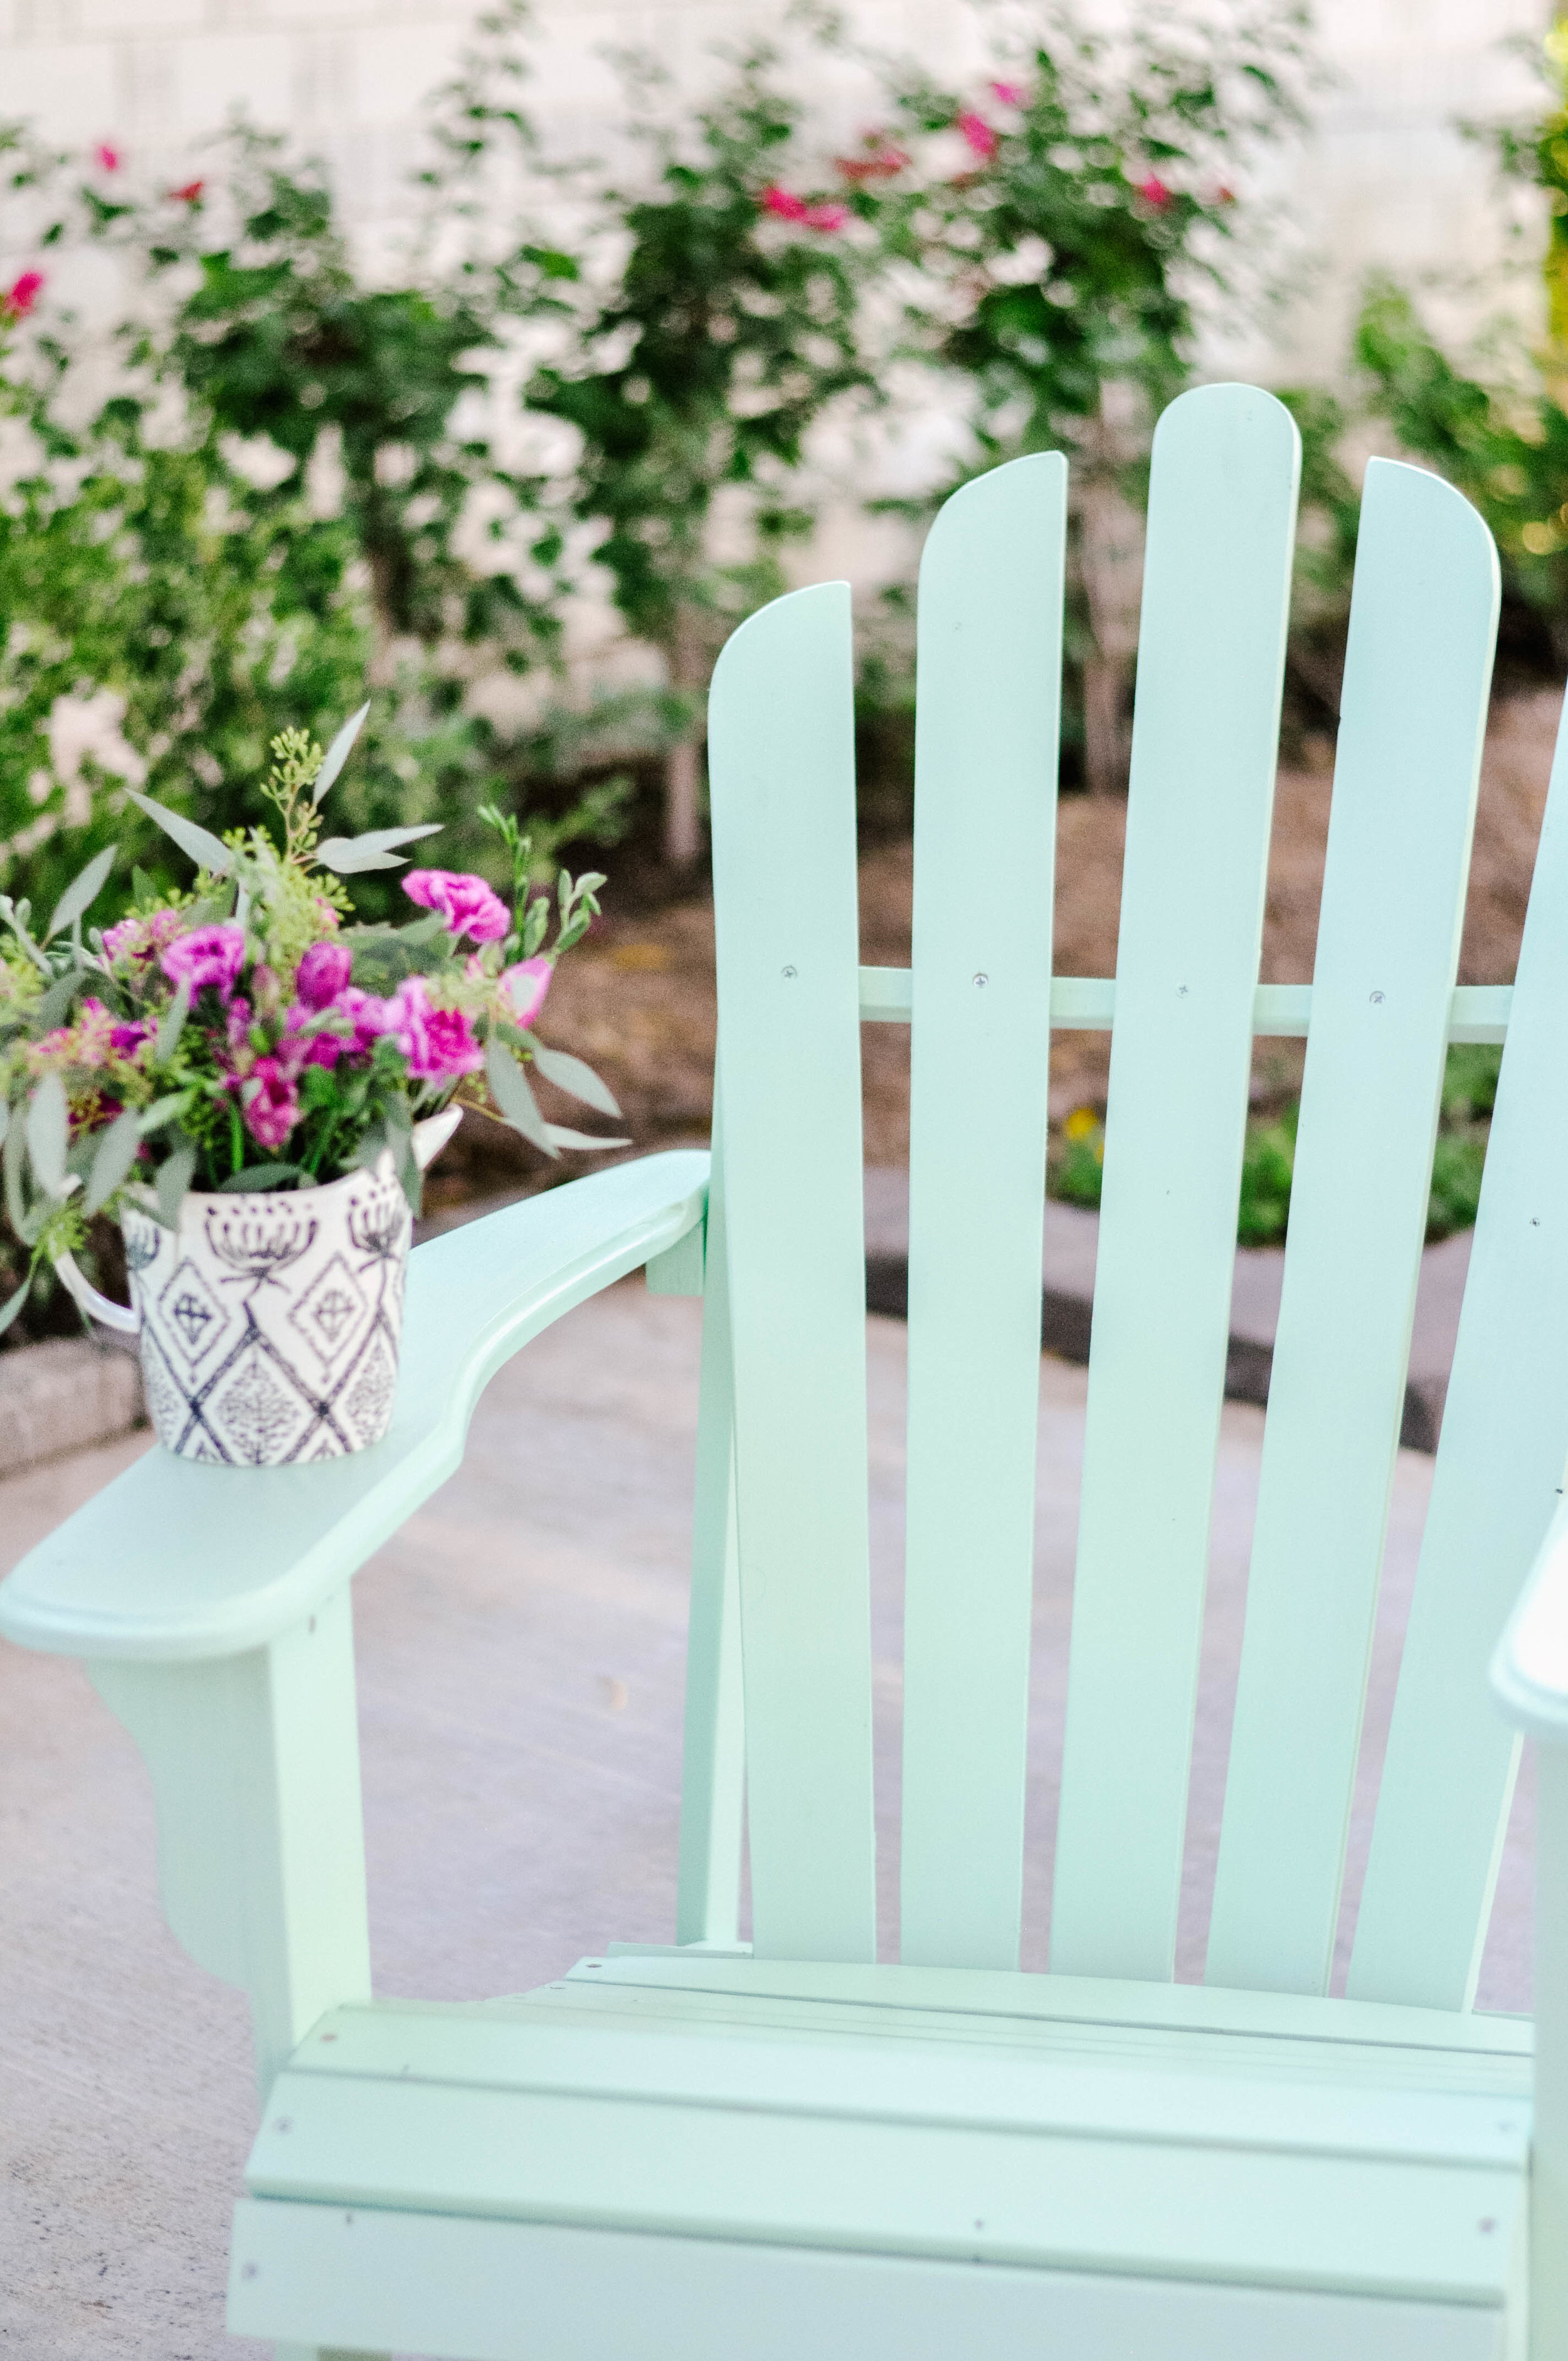 Behr Paint in Enchanted Meadow